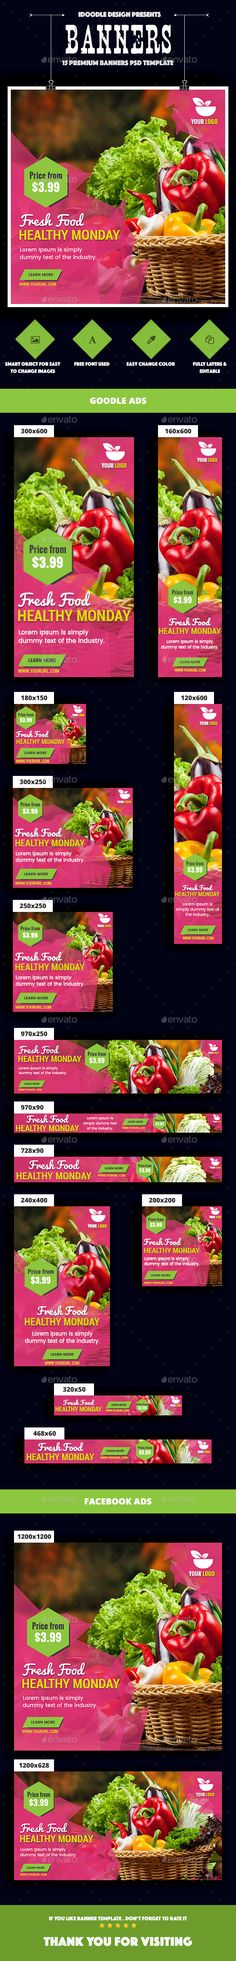 #Food & #Restaurant #Banners #Ad #template - #Banner & #Ads #Web #Elements #design. download here: https://graphicriver.net/item/food-restaurant-banners-ad/20152854?ref=yinkira